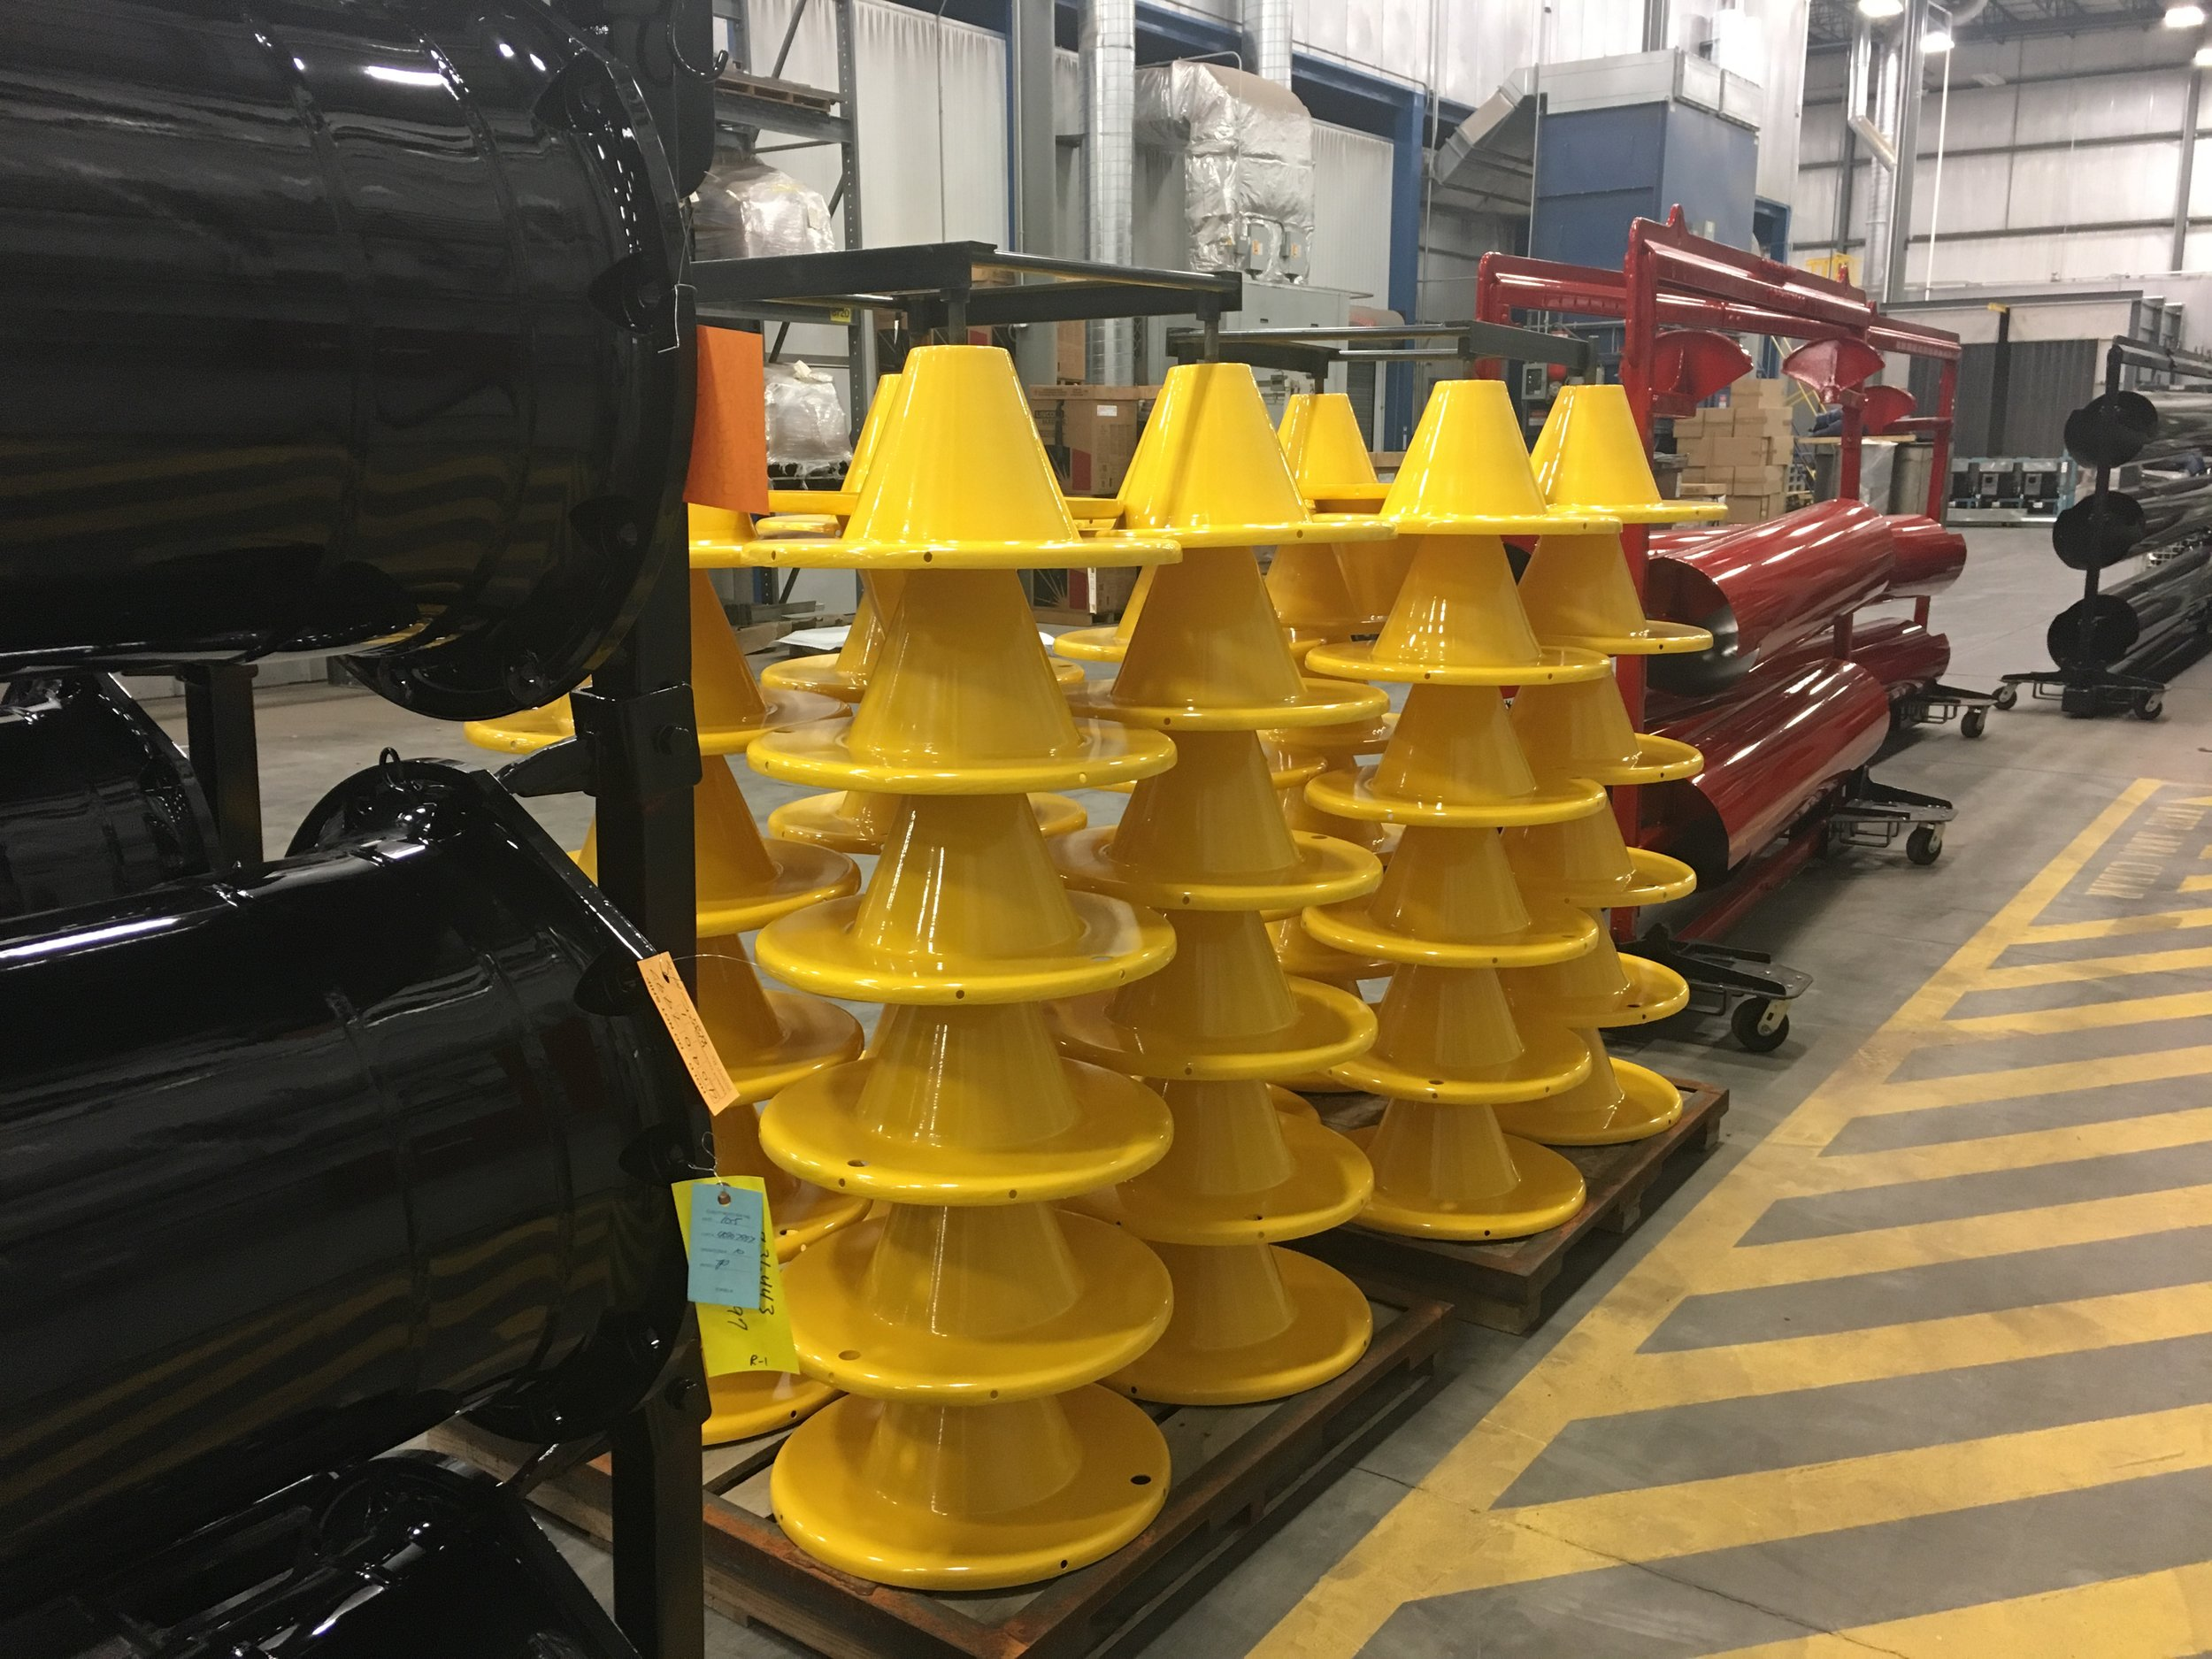 Our complete wire winder line goes through the process of baked on powder coated paint. This system provides premium paint to assure the best coverage available. Above we have split reels fresh from the oven, ready to be boxed and shipped to customers.